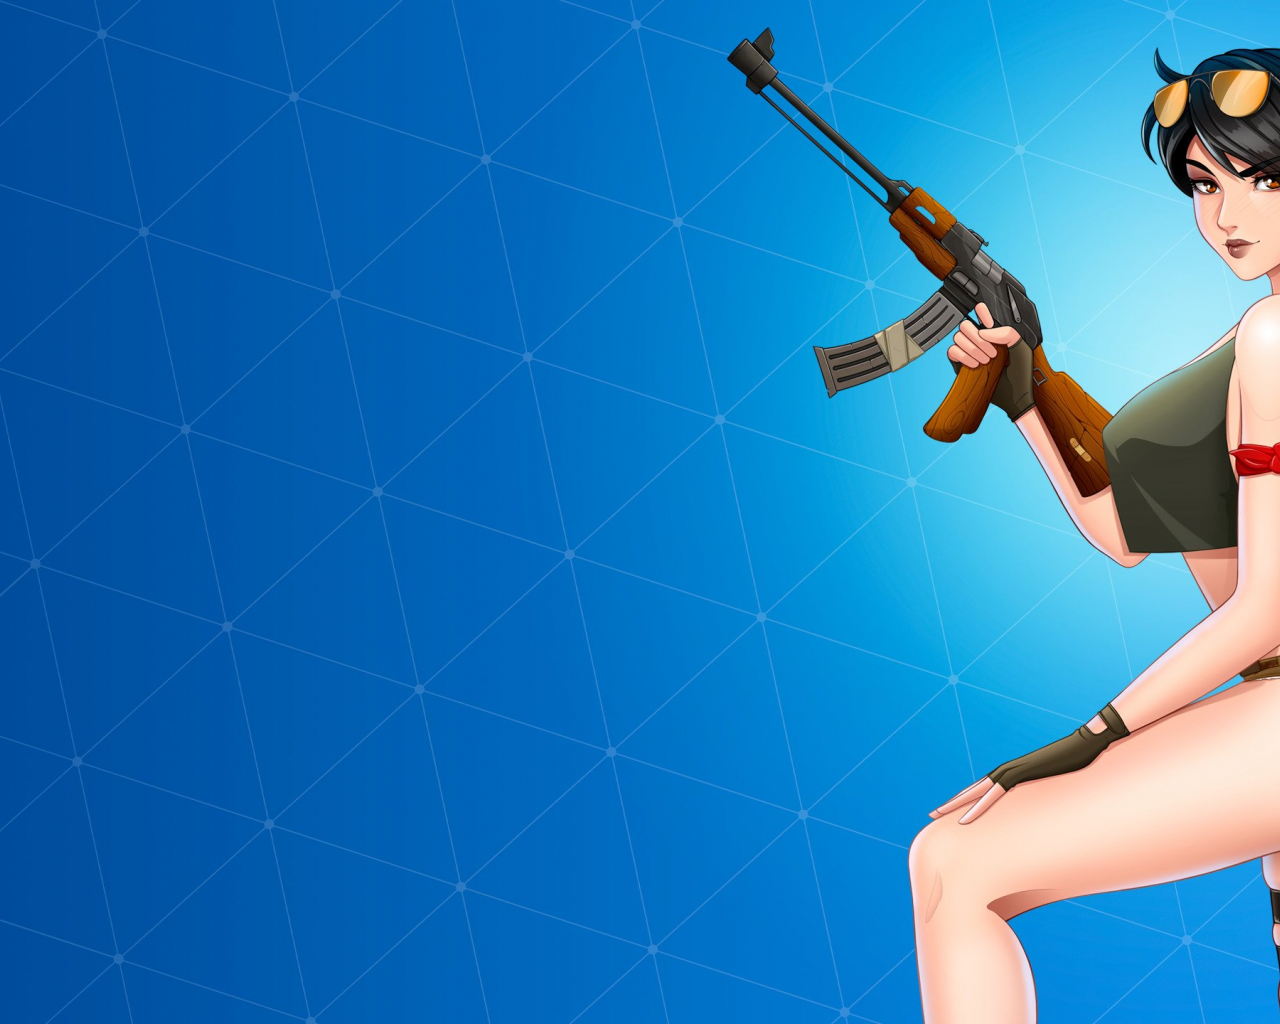 Free Download Cute And Sexy Fortnite Background By Korviel 4417 Wallpapers And 2560x1440 For Your Desktop Mobile Tablet Explore 18 Fortnite Girls Wallpapers Fortnite Girls Wallpapers Wallpapers Girls Fortnite Wallpapers